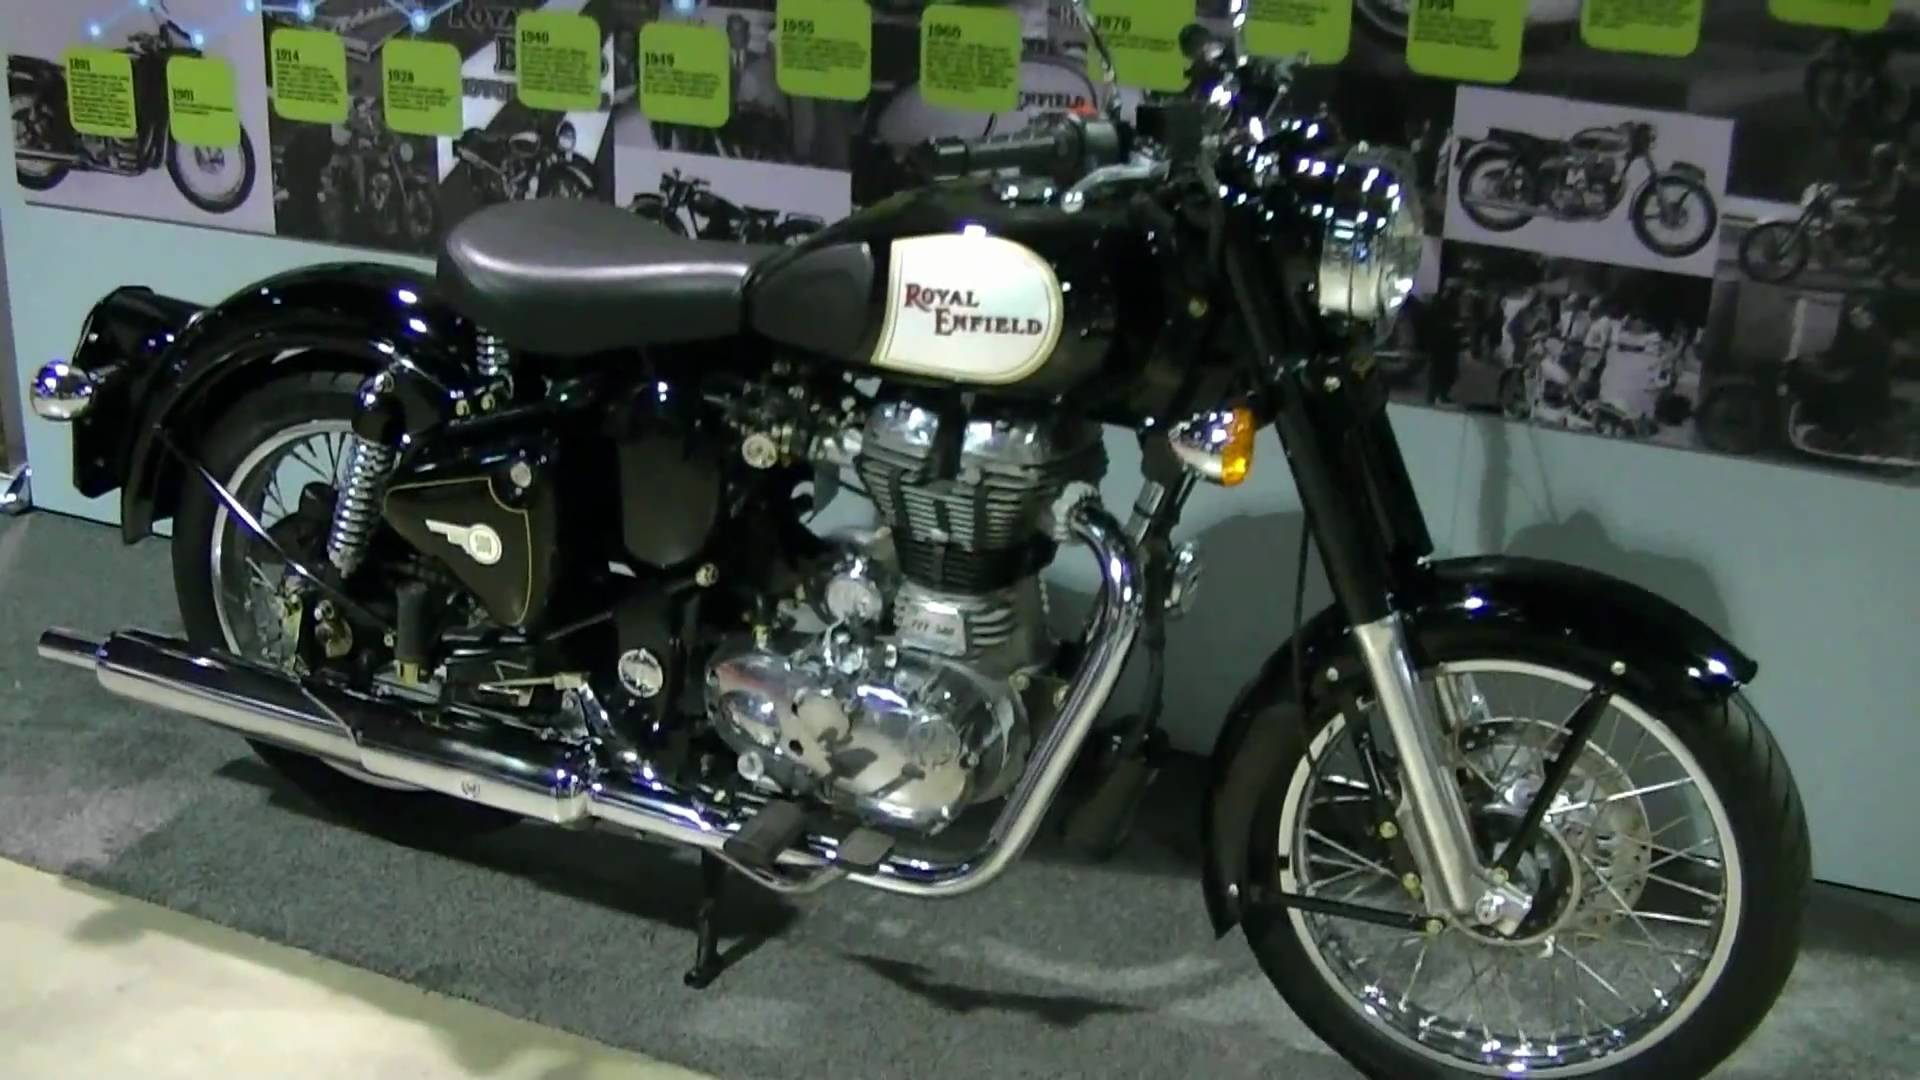 Royal Enfield Bullet 500 Army 1996 images #122711